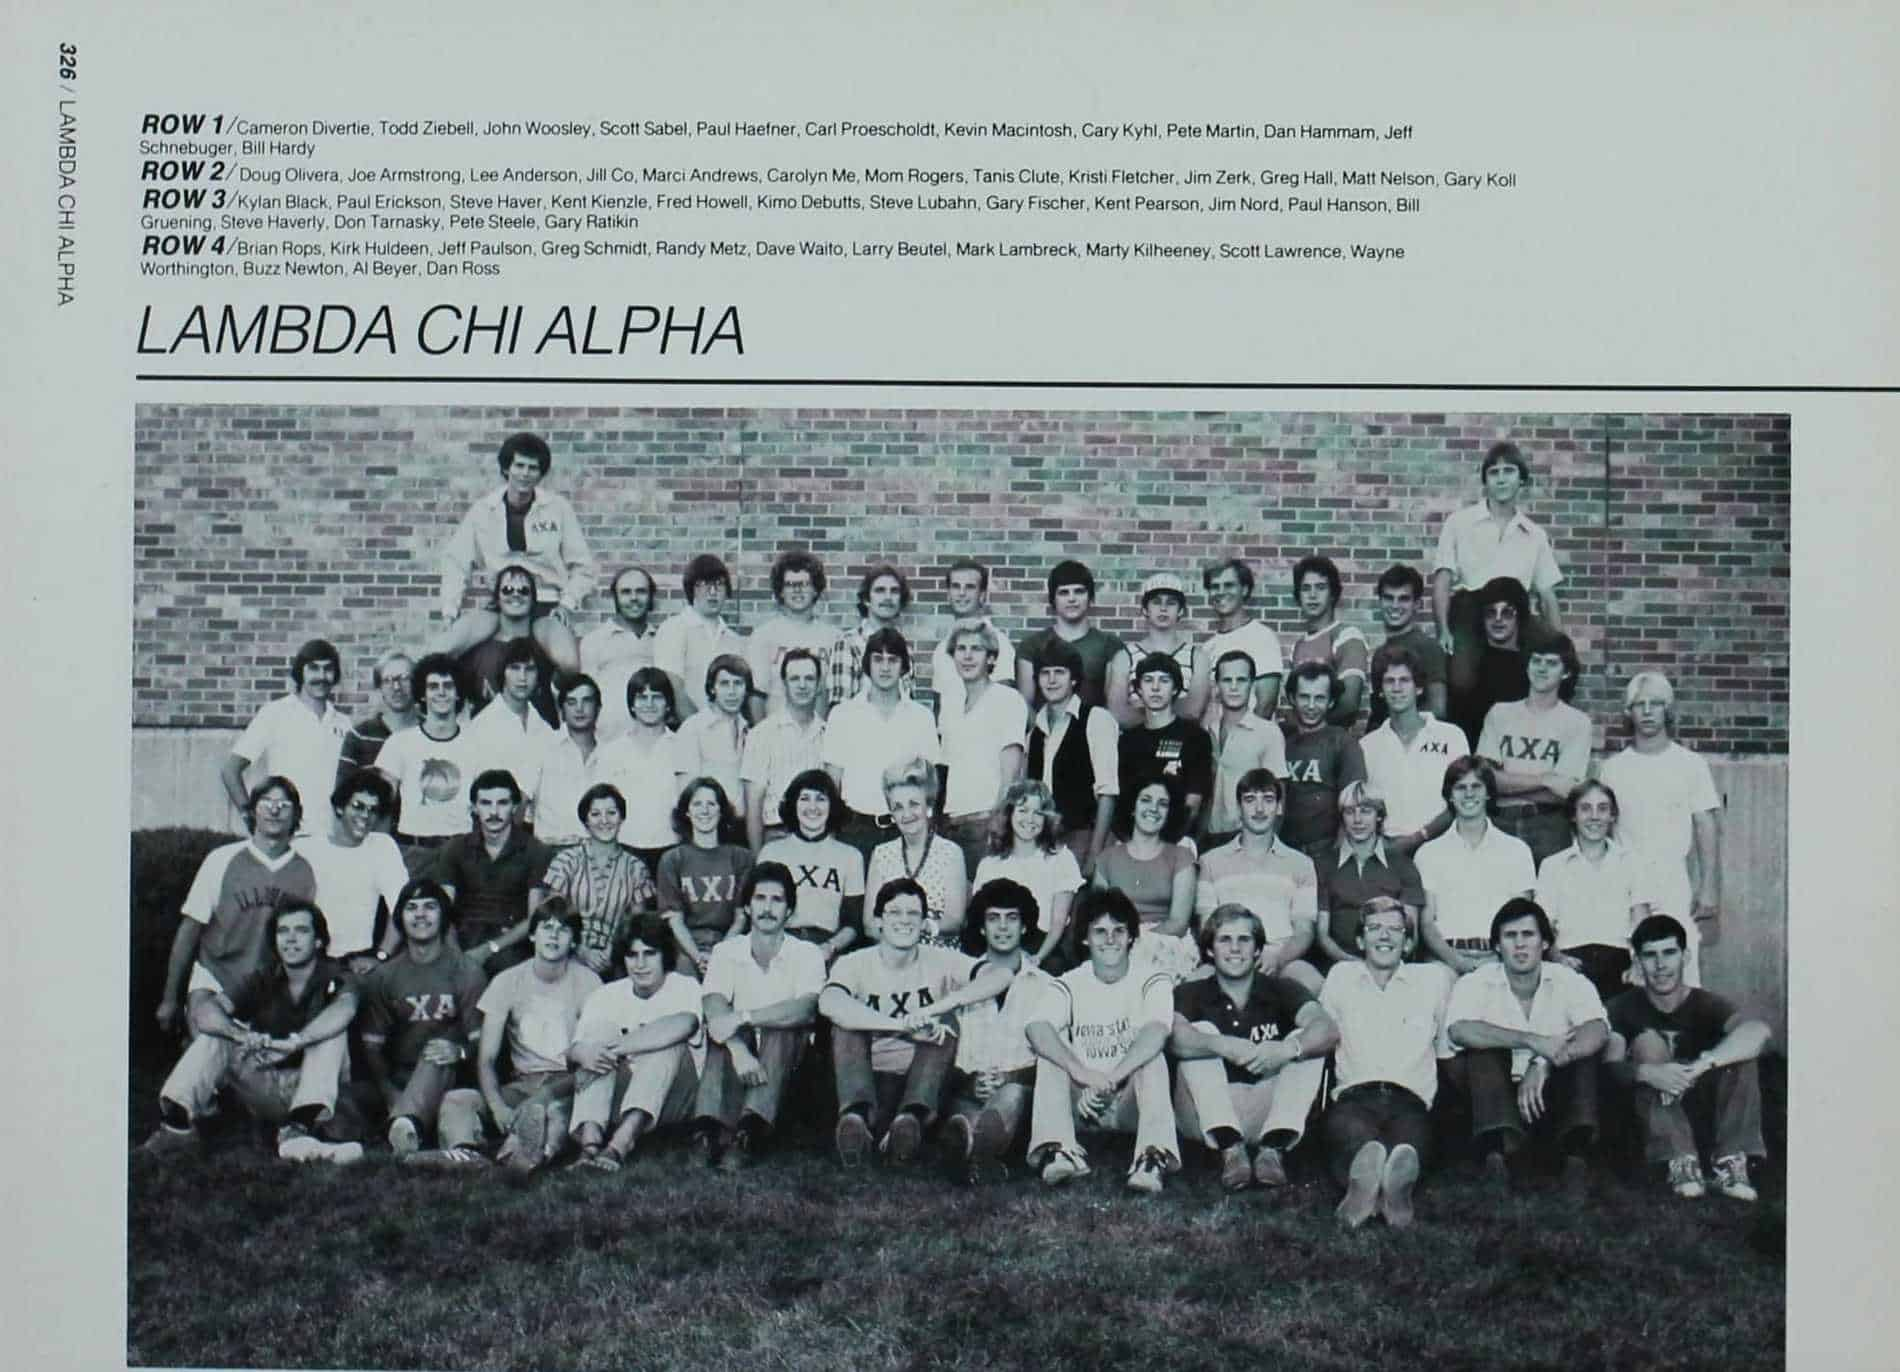 1980 Iowa State Yearbook